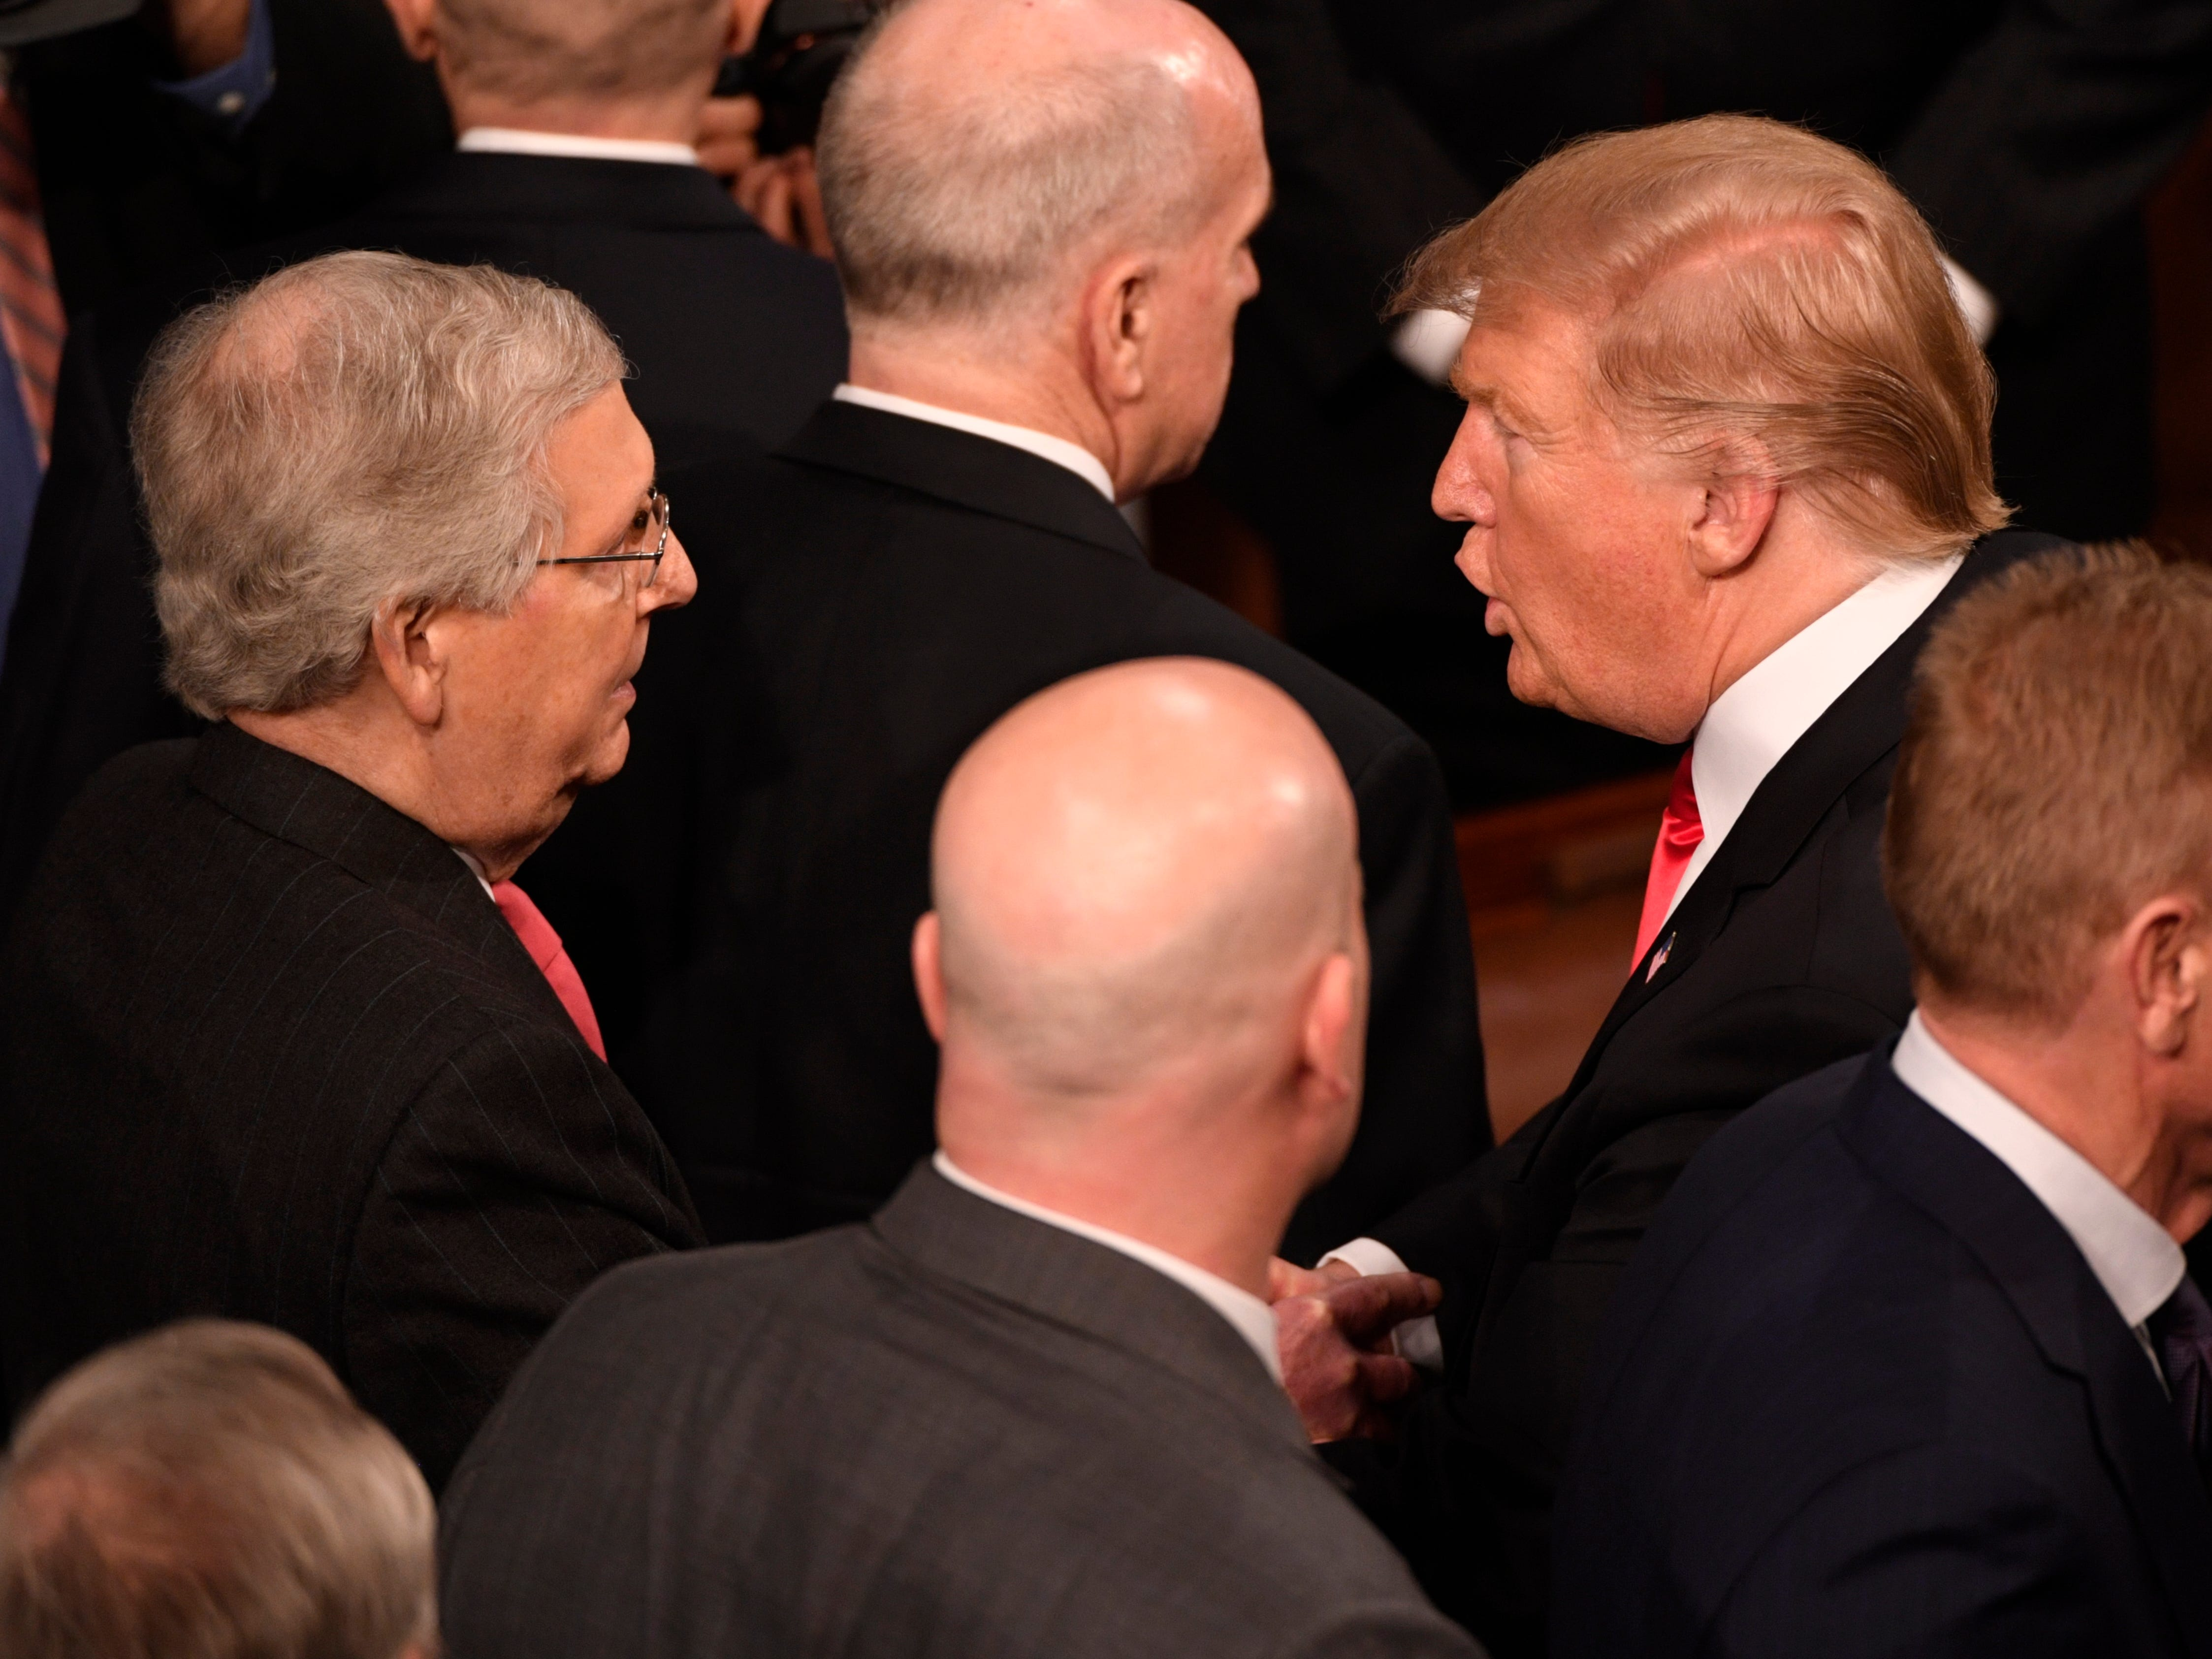 President Donald Trump greets Sen. Mitch McConnell (R-Ky.) after he delivered the State of the Union address.